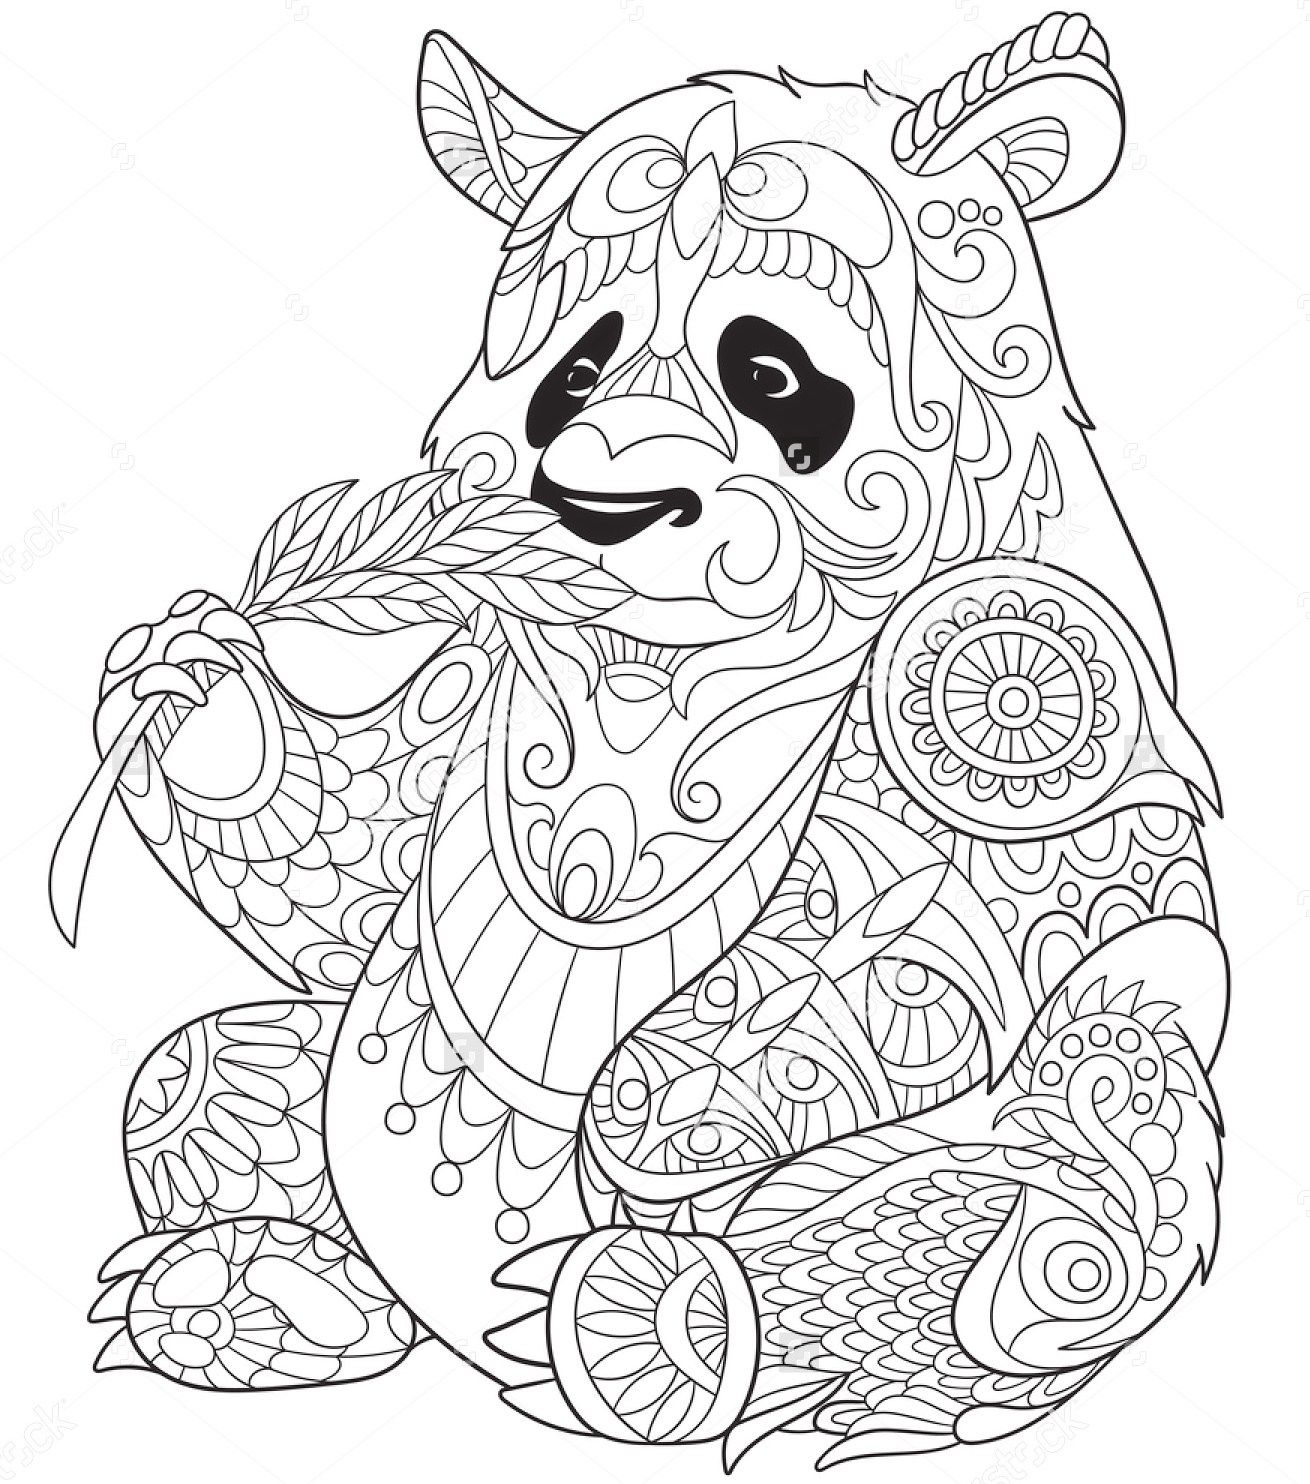 panda-eating-bamboo-zentangle-coloring-page | Art--Coloring Pages ...